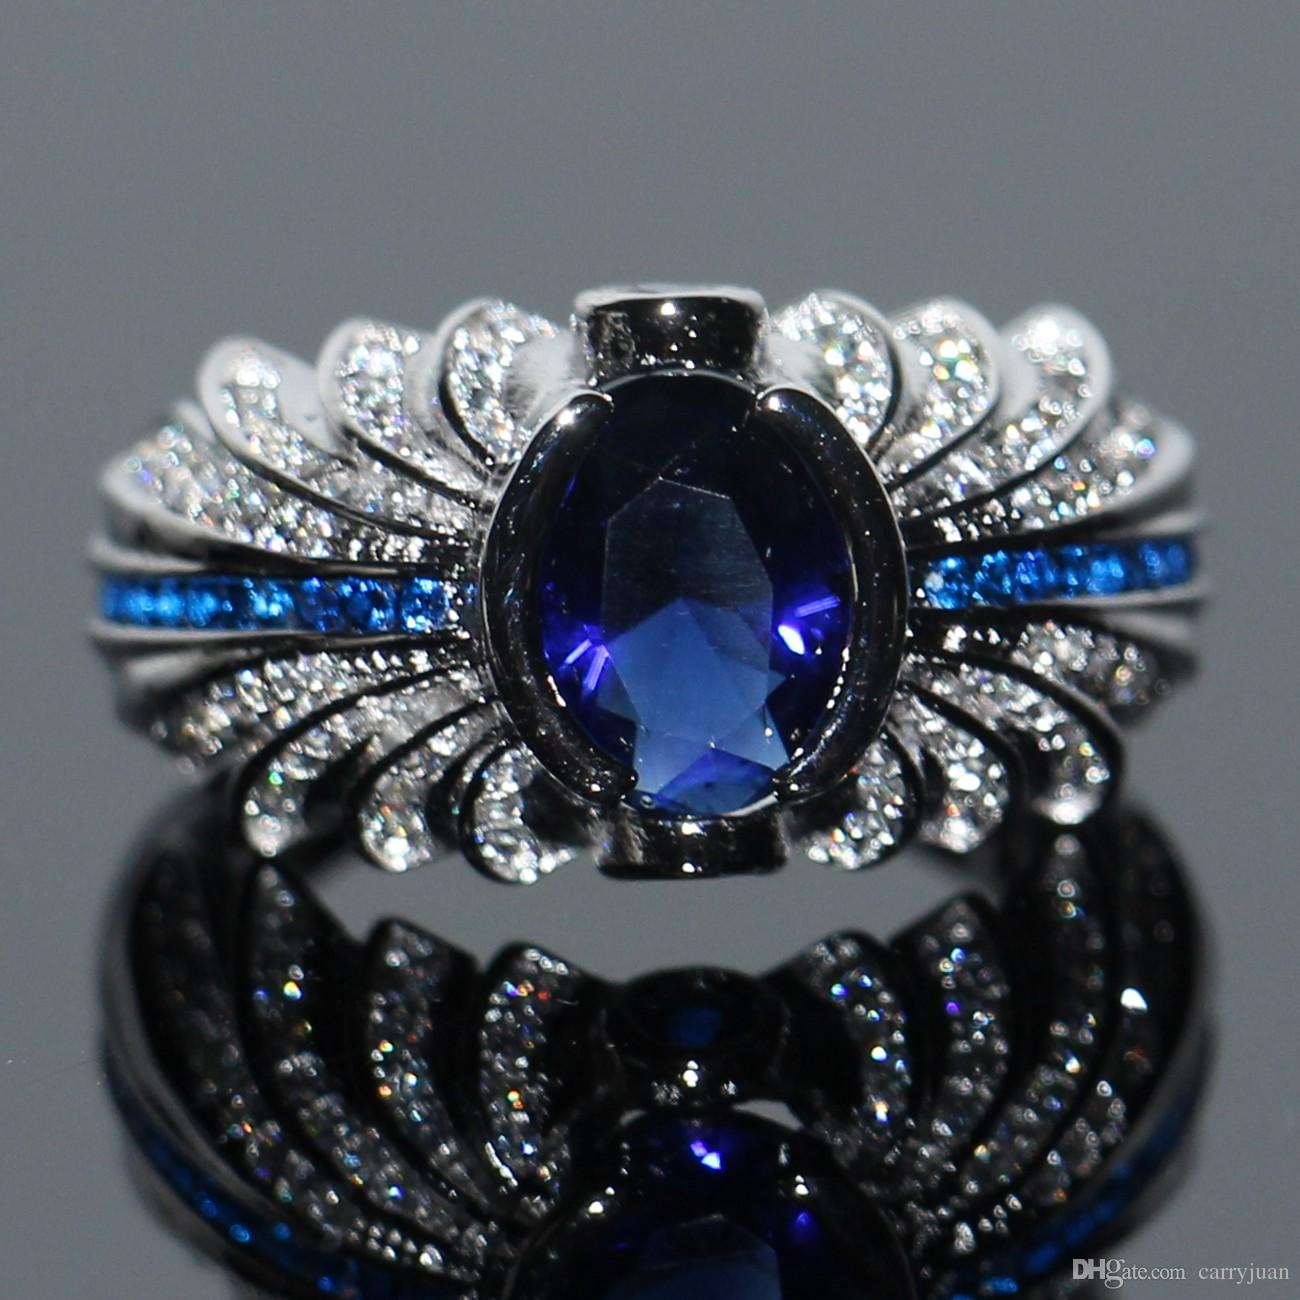 This is an image of 43 Lovers Ring For Men Luxury Jewelry Top Selling Brand Desgin 43 Sterling Silver Blue Sapphire CZ Diamond Gemstones Animal Wedding Ring Set From